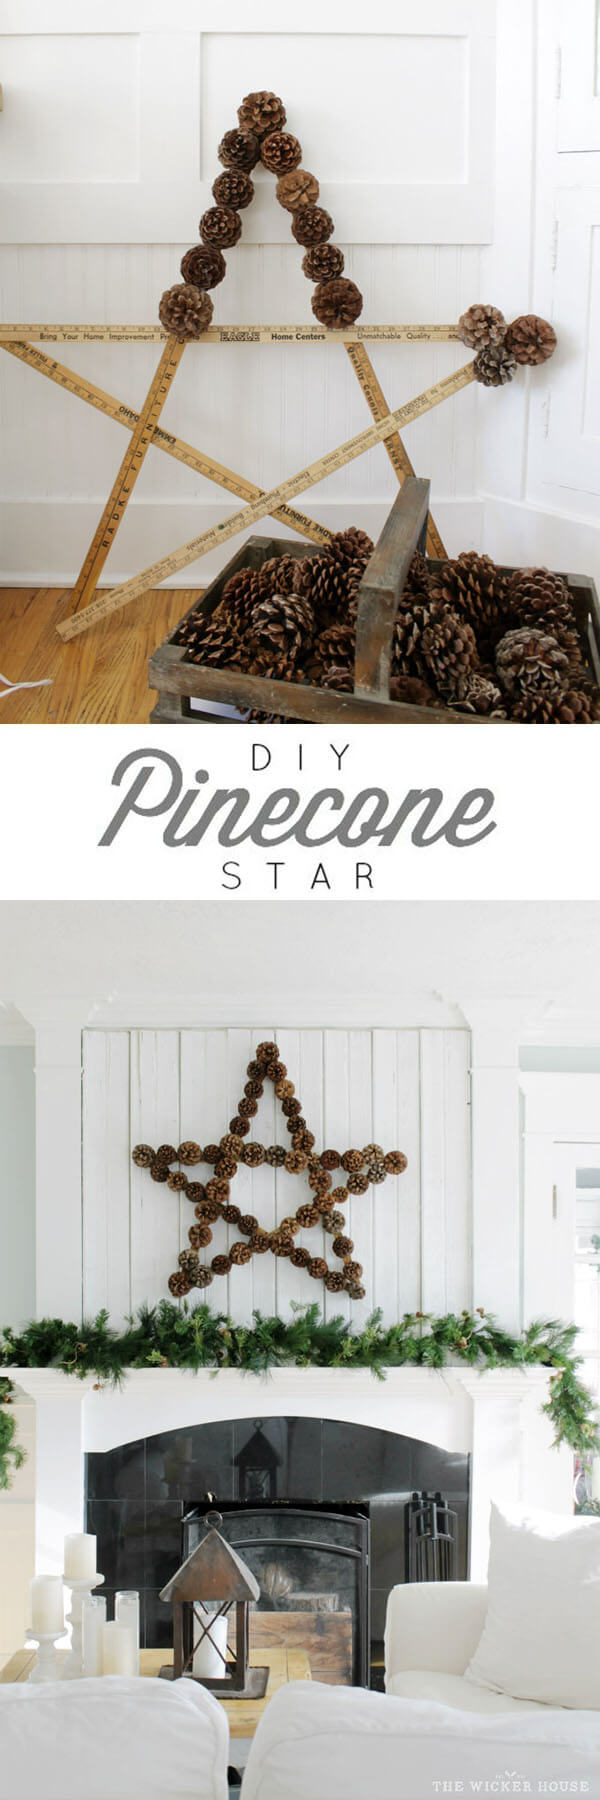 25 Best DIY Pine Cone Crafts (Ideas and Designs) for 2018